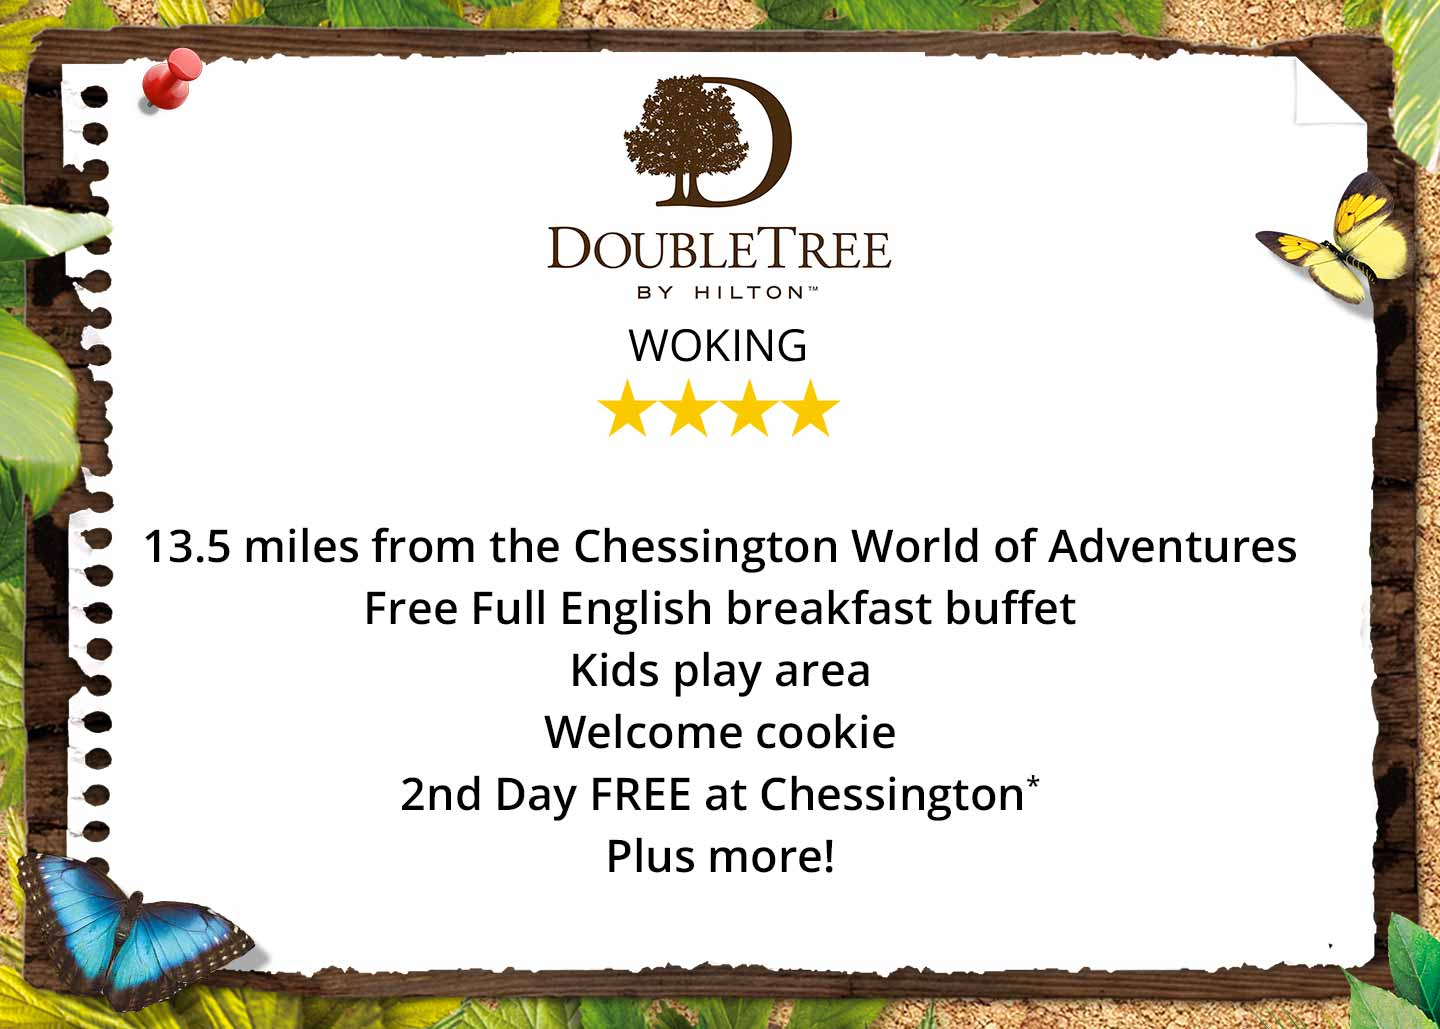 Doubletree By Hilton Woking near Chessington World of Adventures Resort